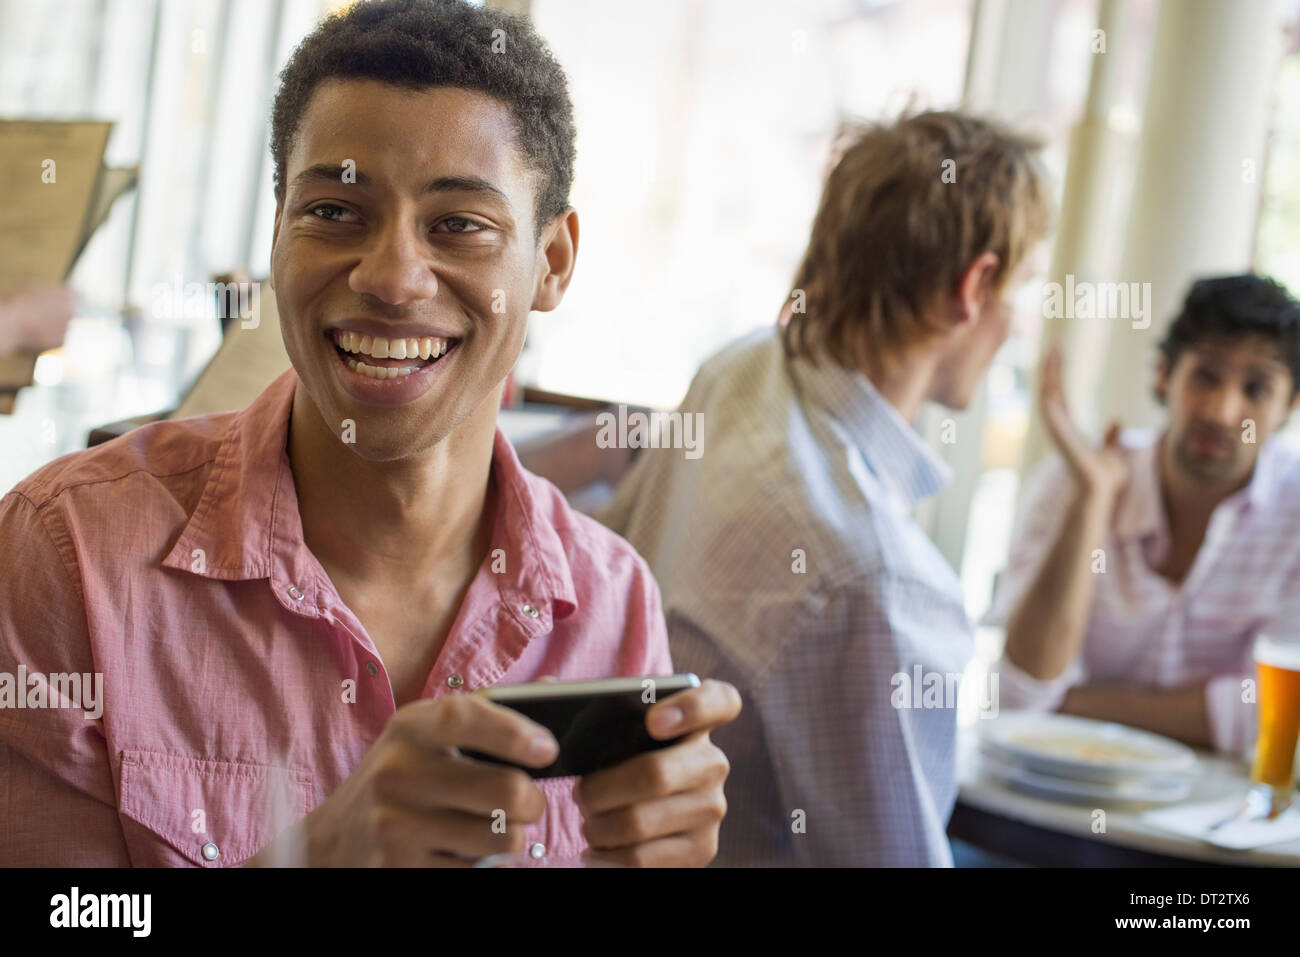 Urban Lifestyle Three young men in a cafe One checking his smart phone Two talking at a table - Stock Image